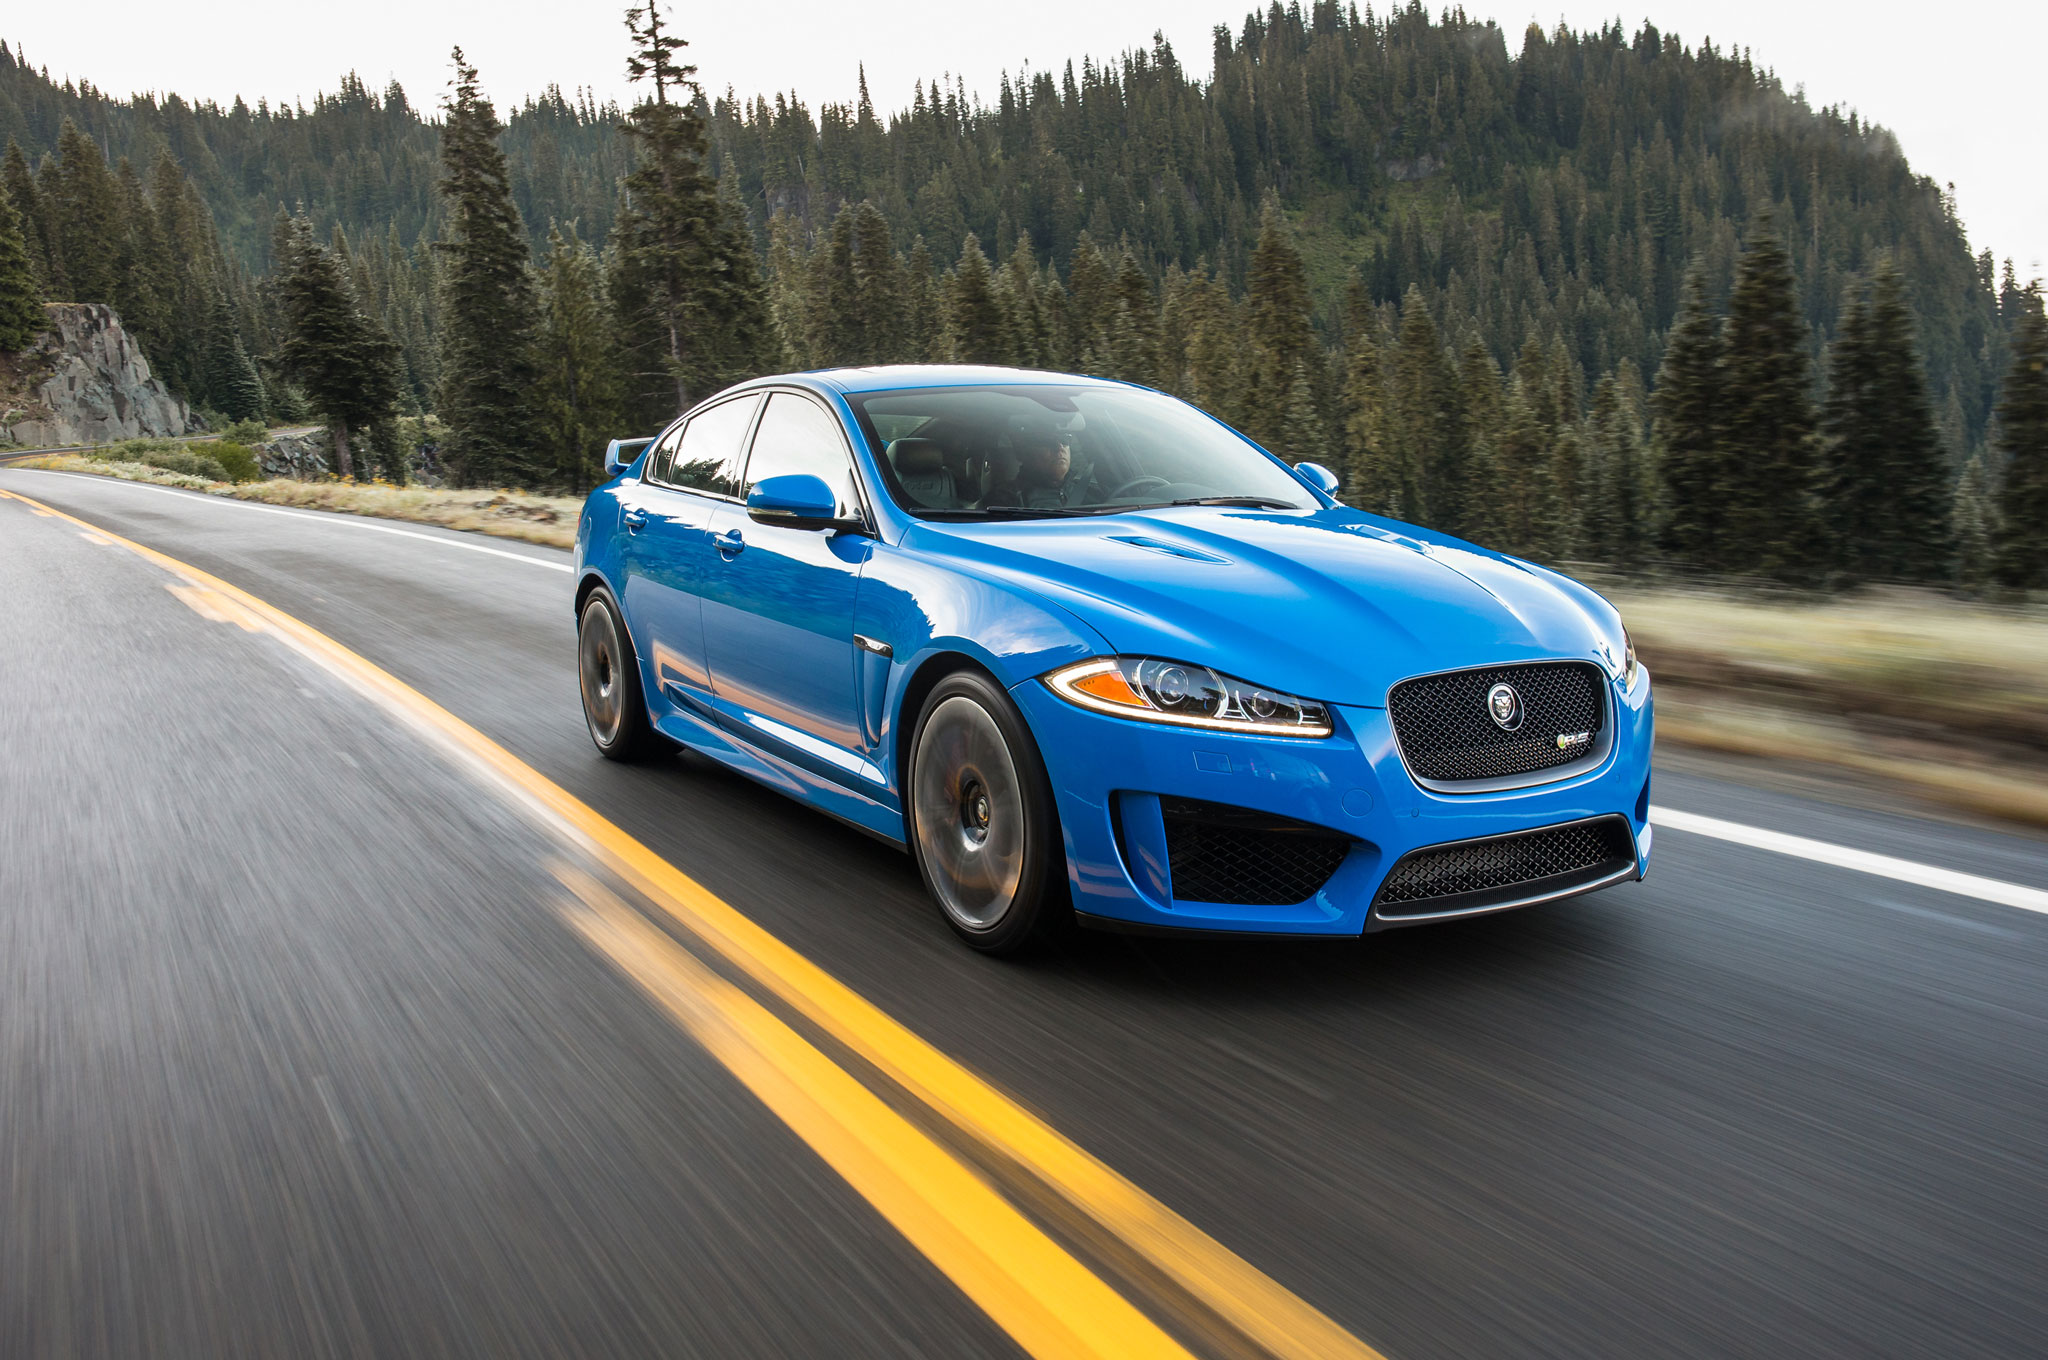 2014 Jaguar XFR S Front Right View 21